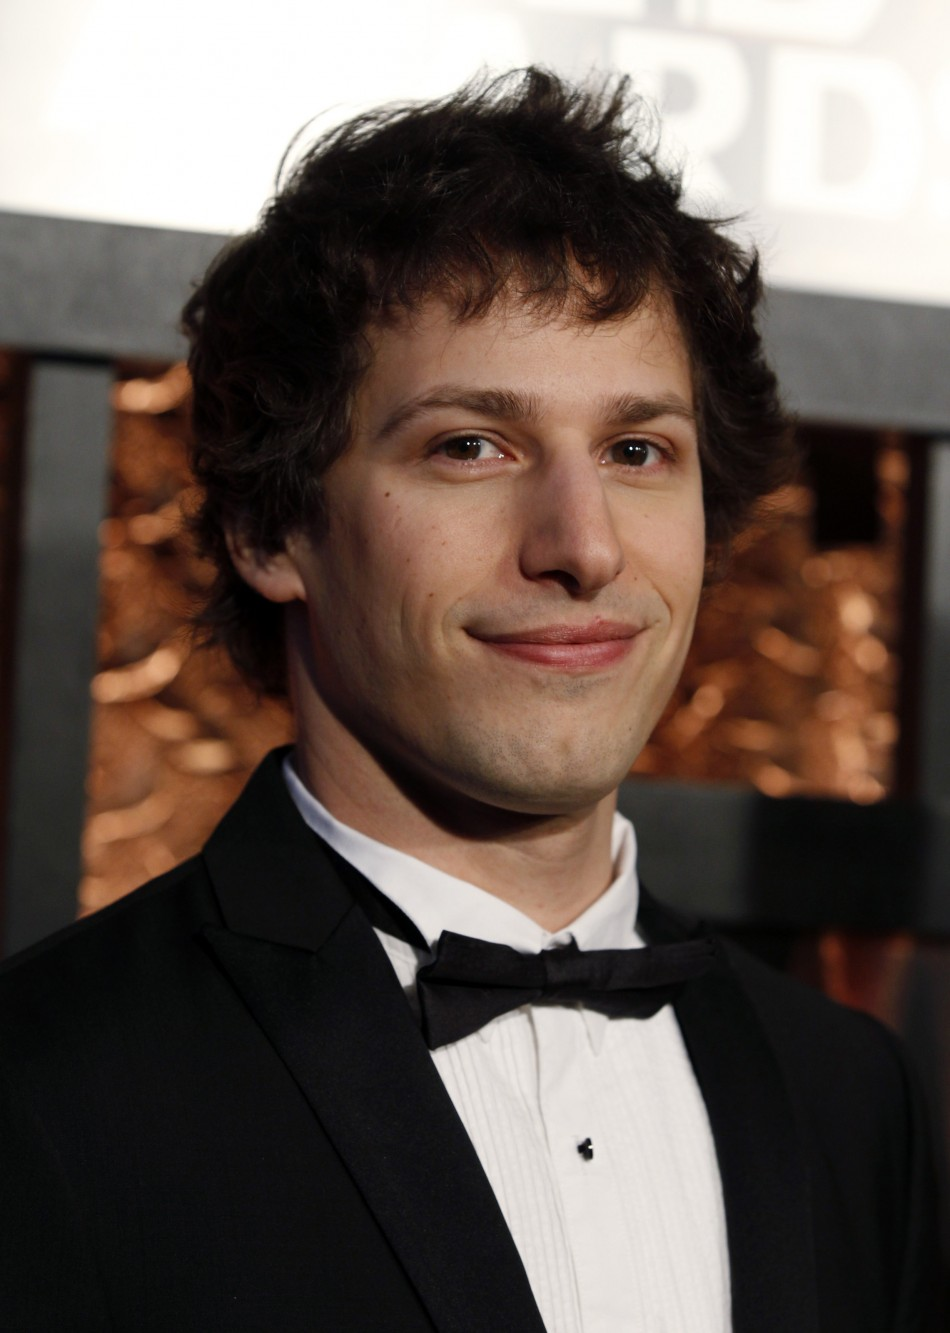 Andy Samberg Emmy Awards 2015